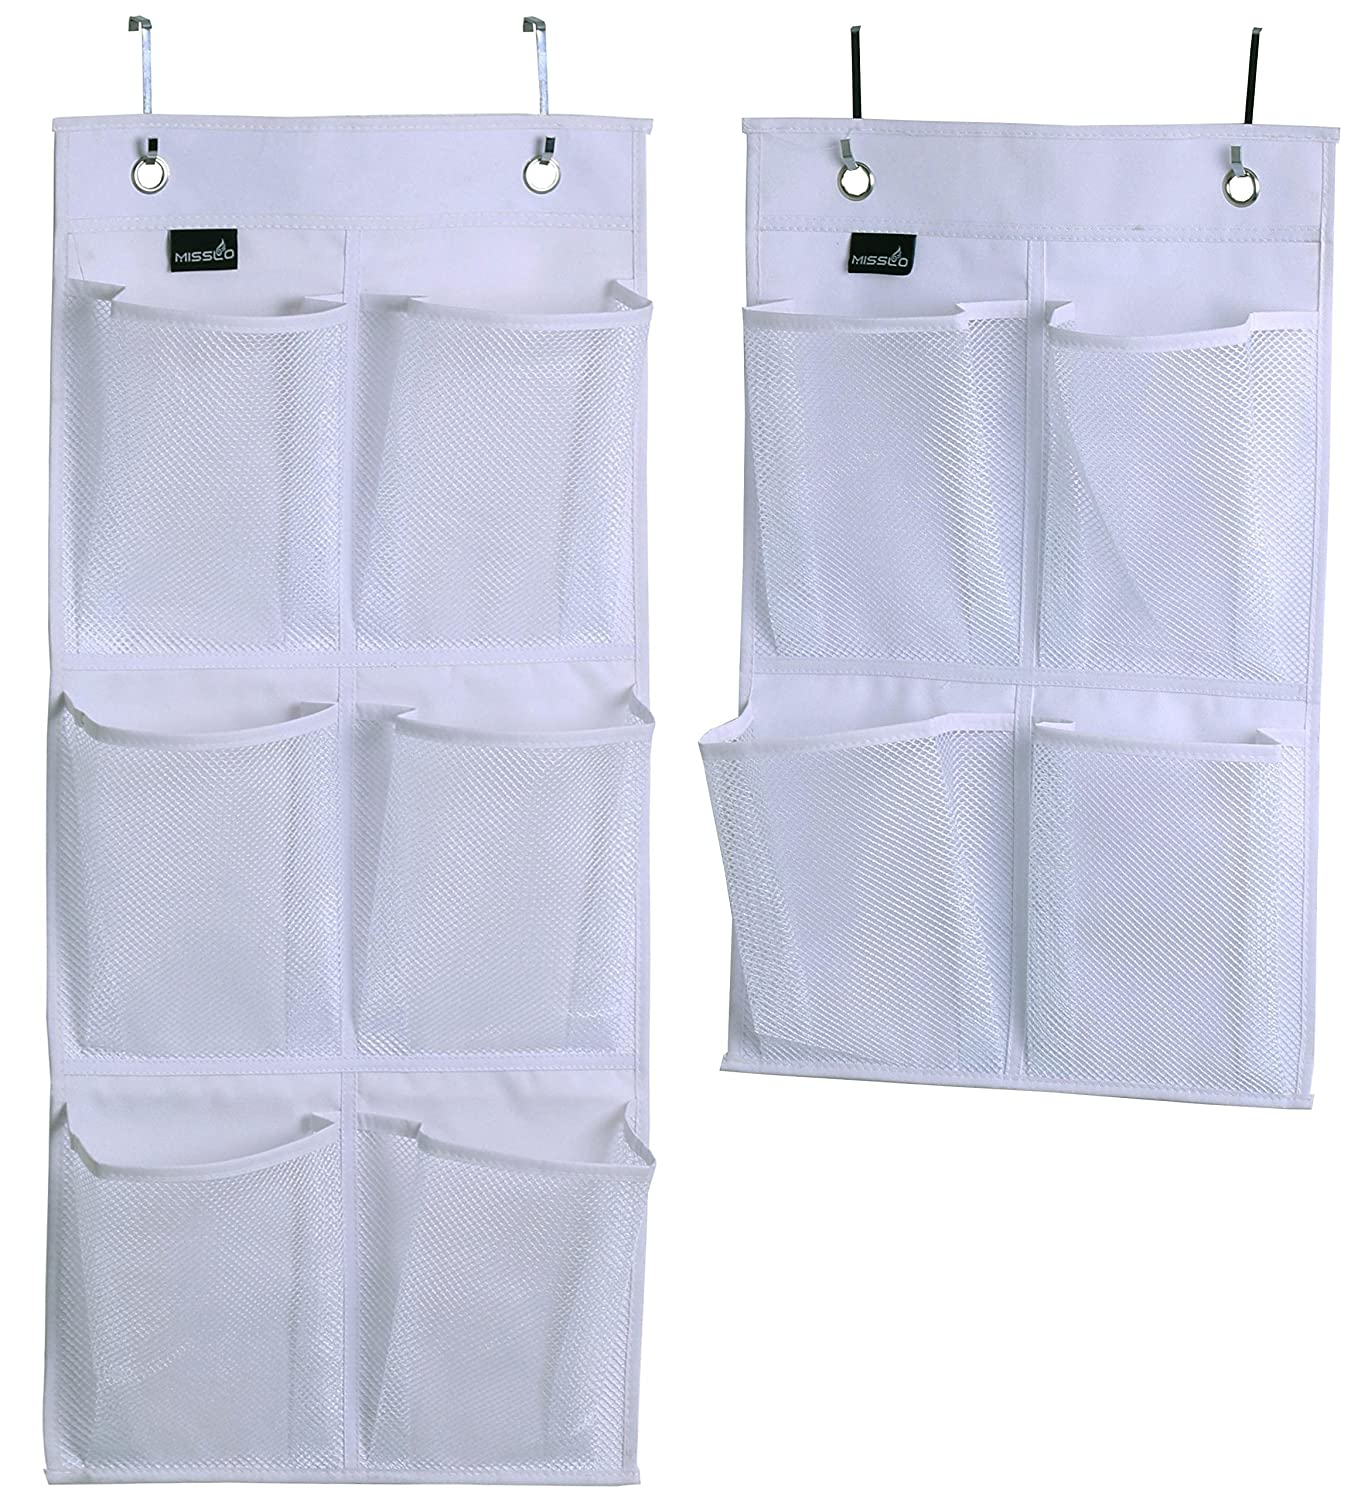 Misslo Over Door Organizer For Closet Pantry Narrow Door, Pack 2, White SYNCHKG114529